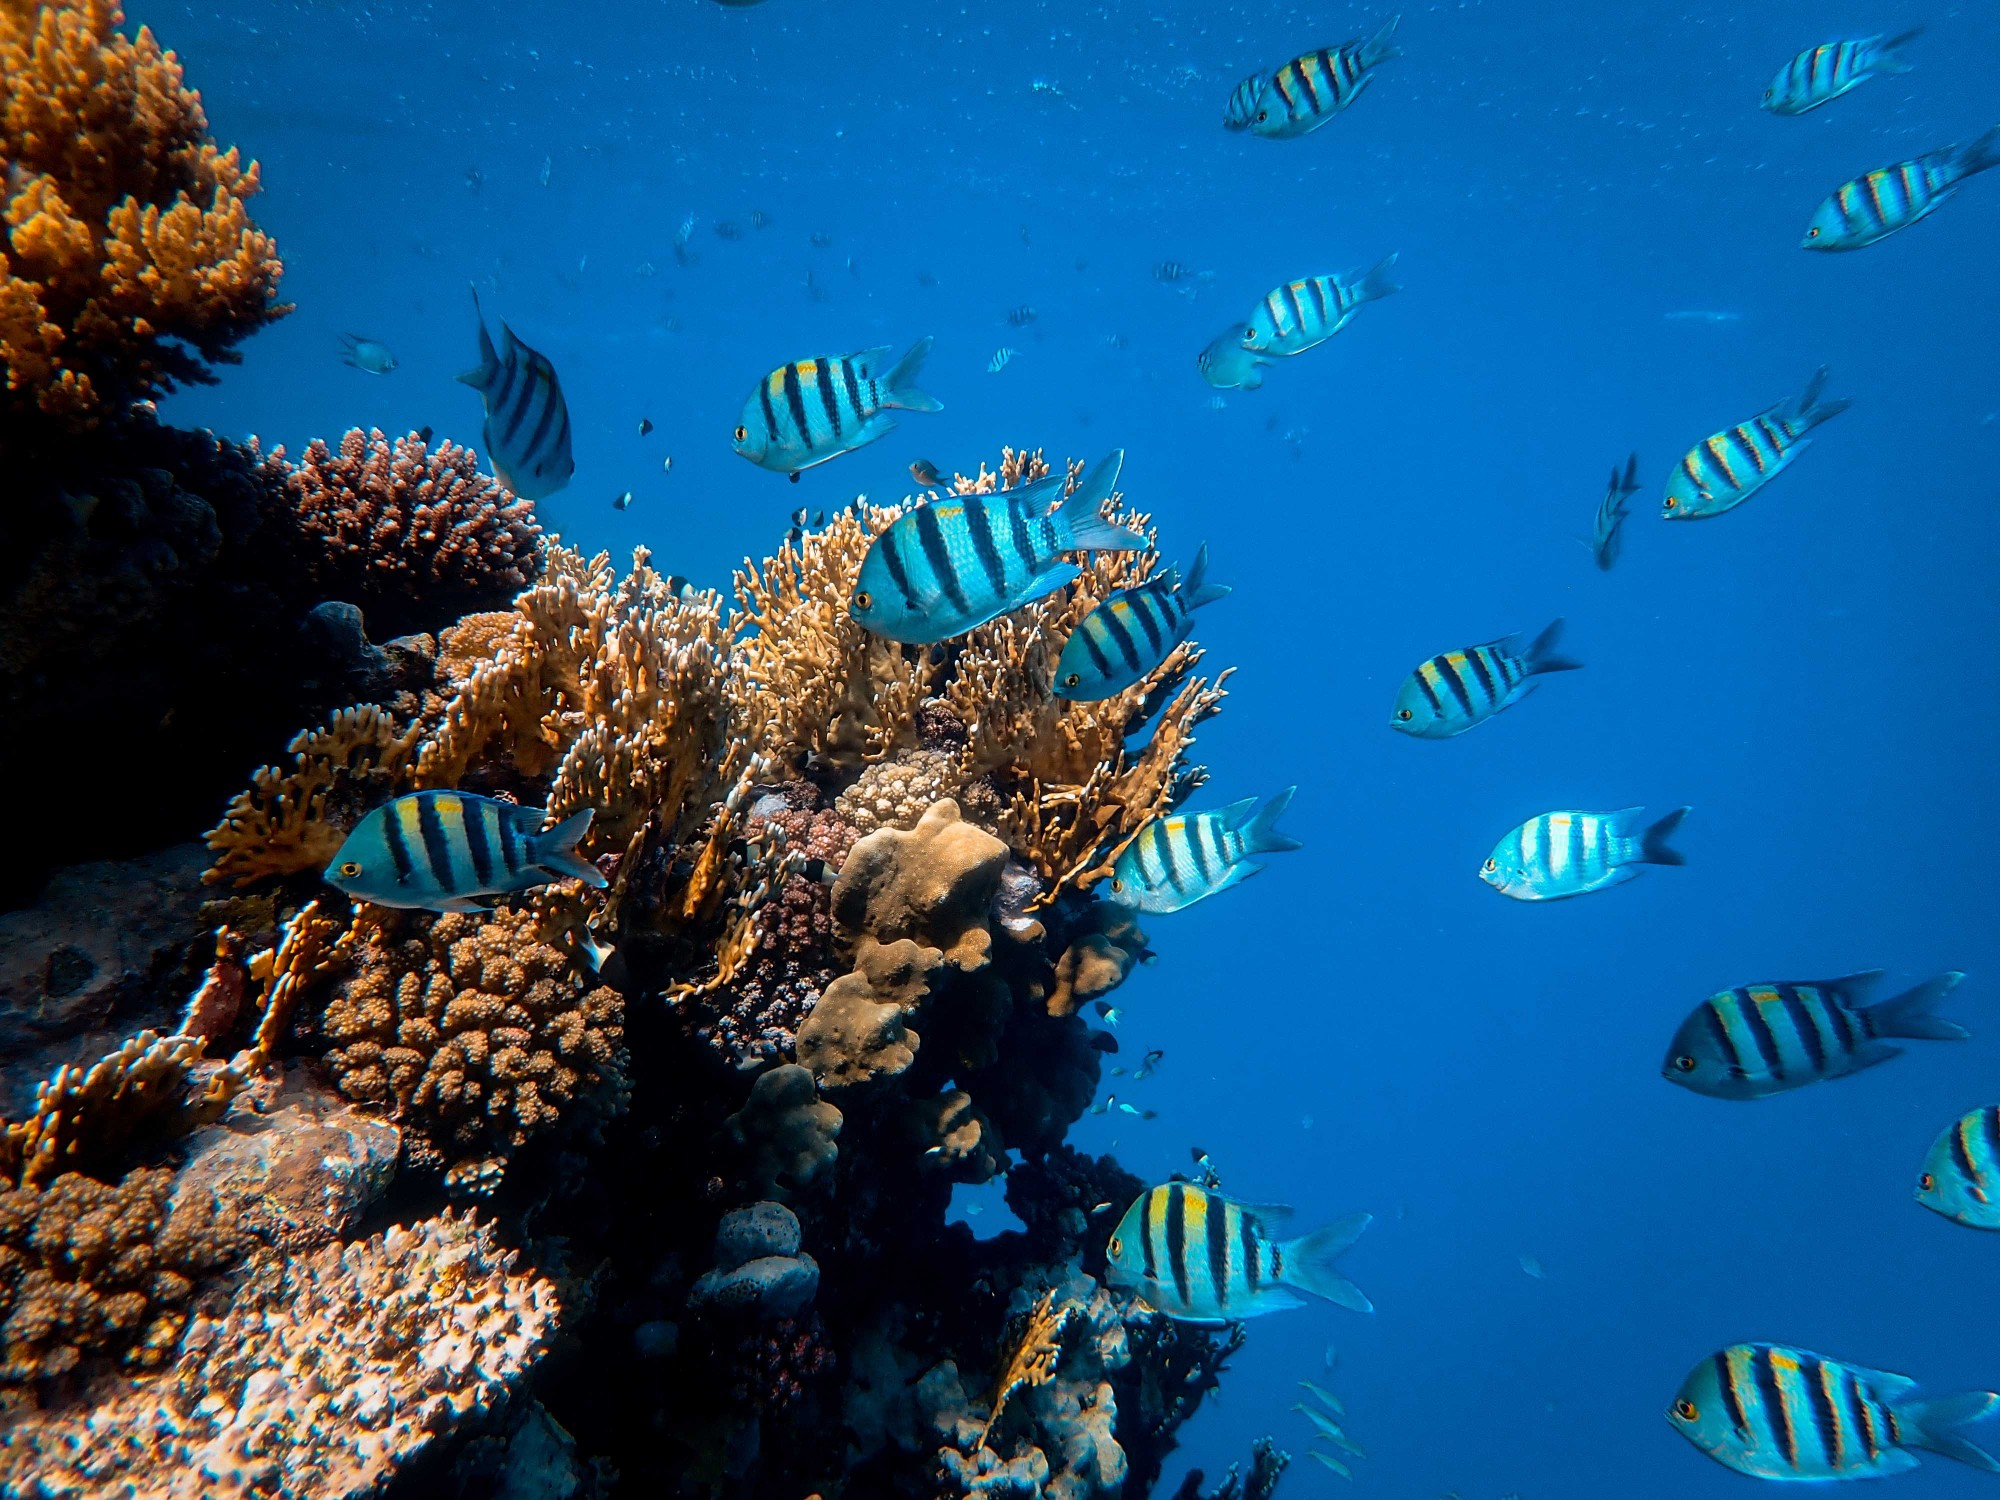 Researchers design bionic 3D printed corals that could help energy production and coral reefs (ForgePress)